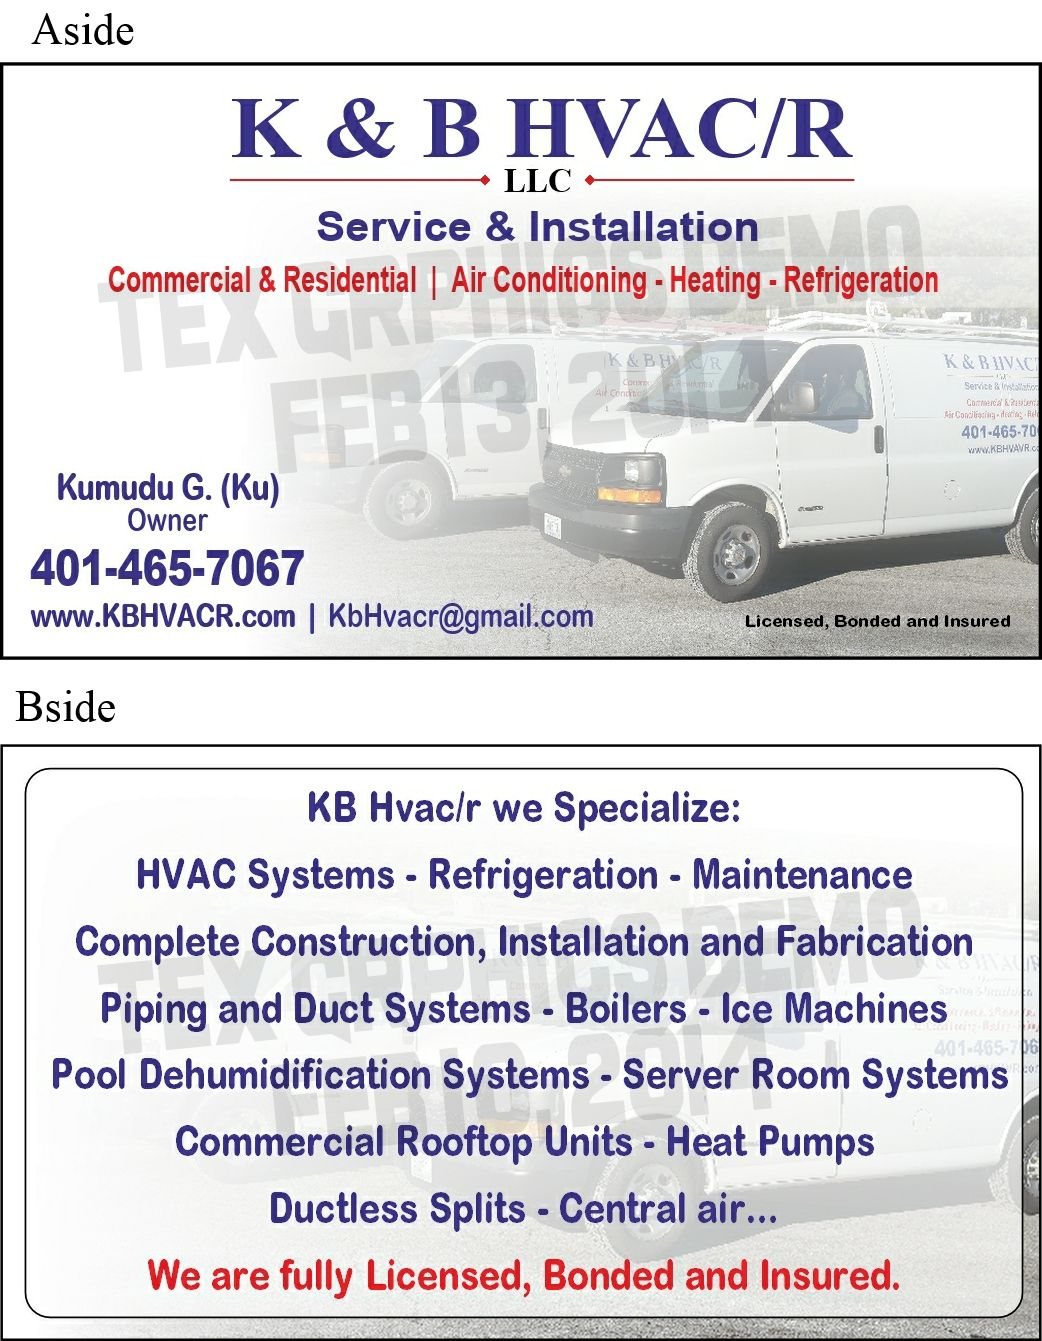 K B Hvacr Residential Air Conditioning Heating And Air